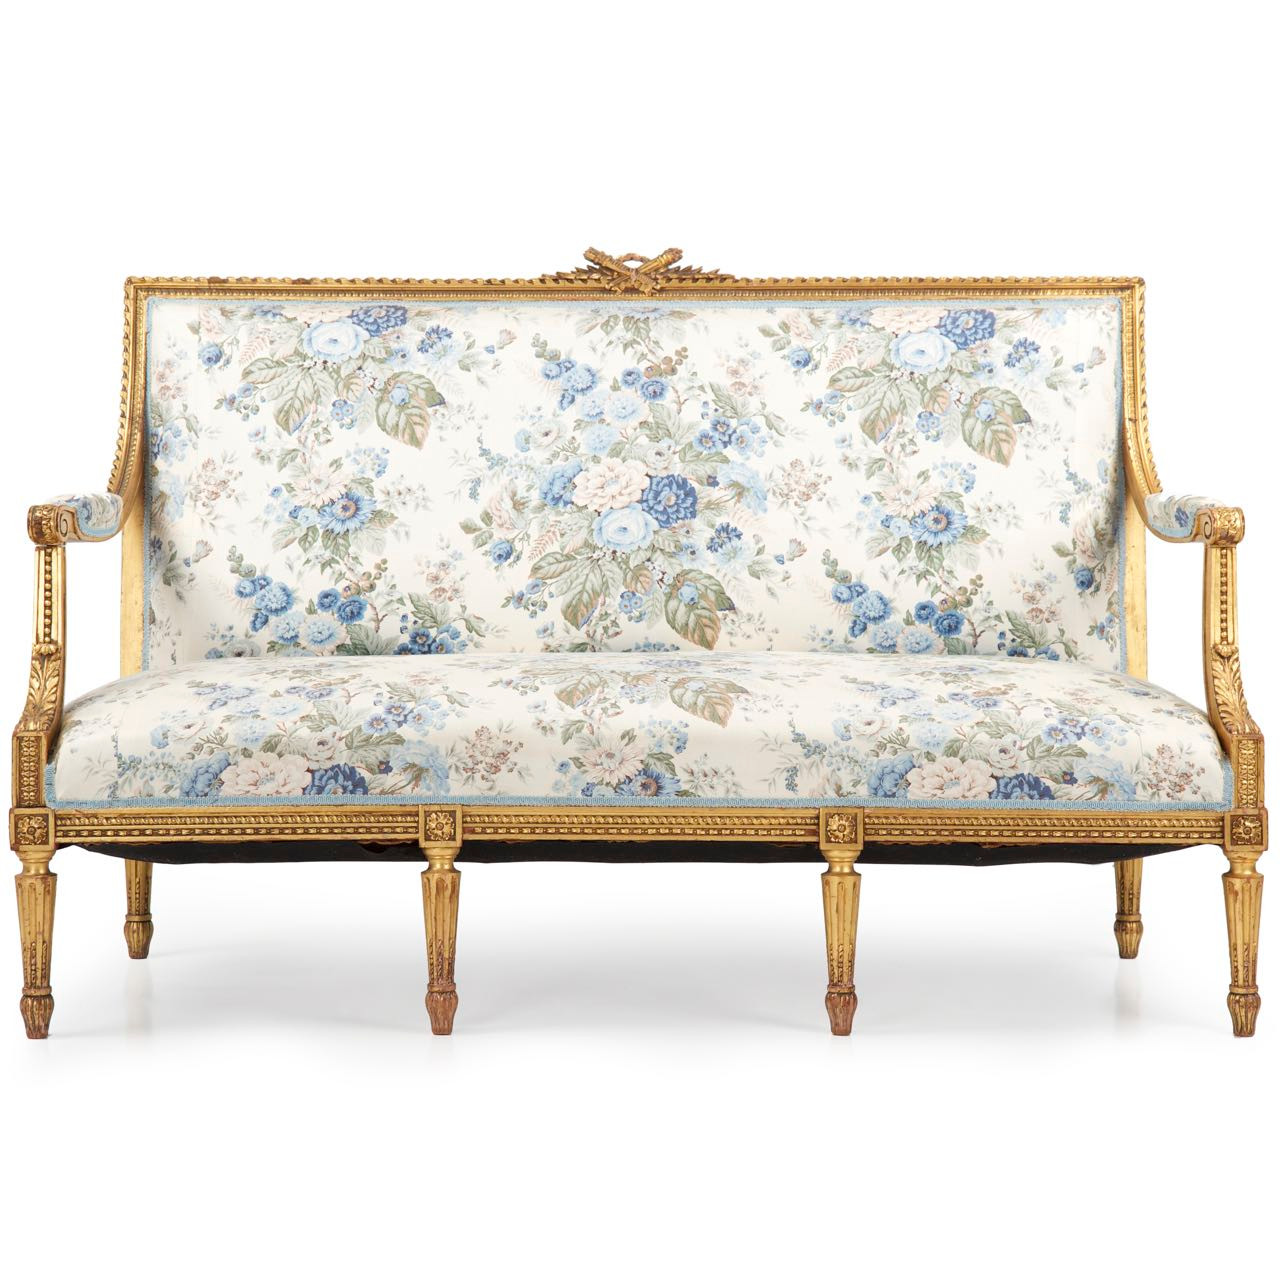 Charmant French Louis XVI Style Gilt Antique Settee Sofa C. 1900